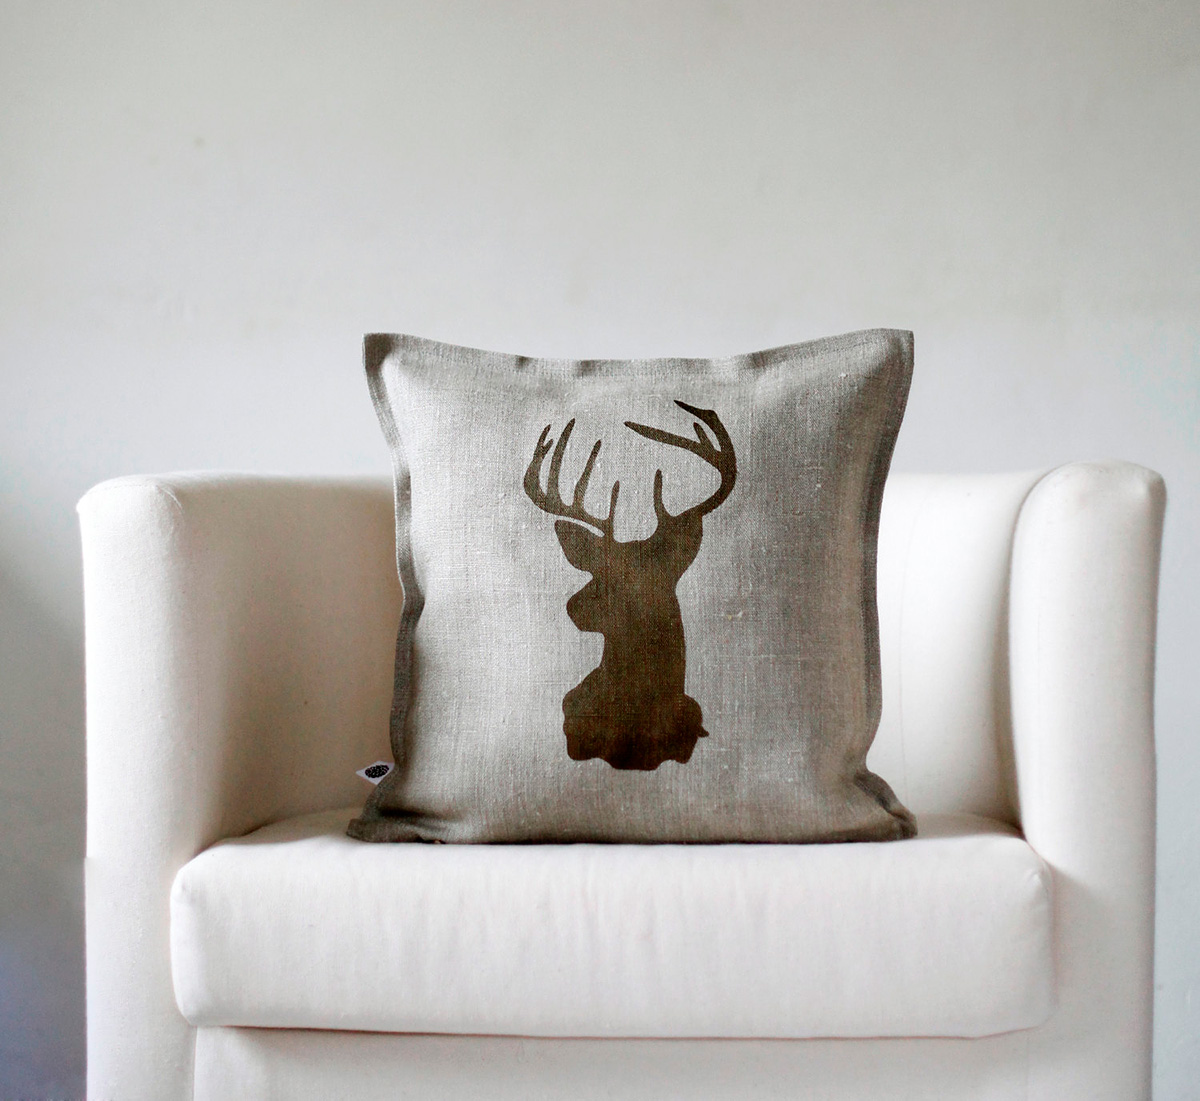 christmas decoration ideas for small living room furniture groups these stylish reindeer pillow covers are made from 100% ...